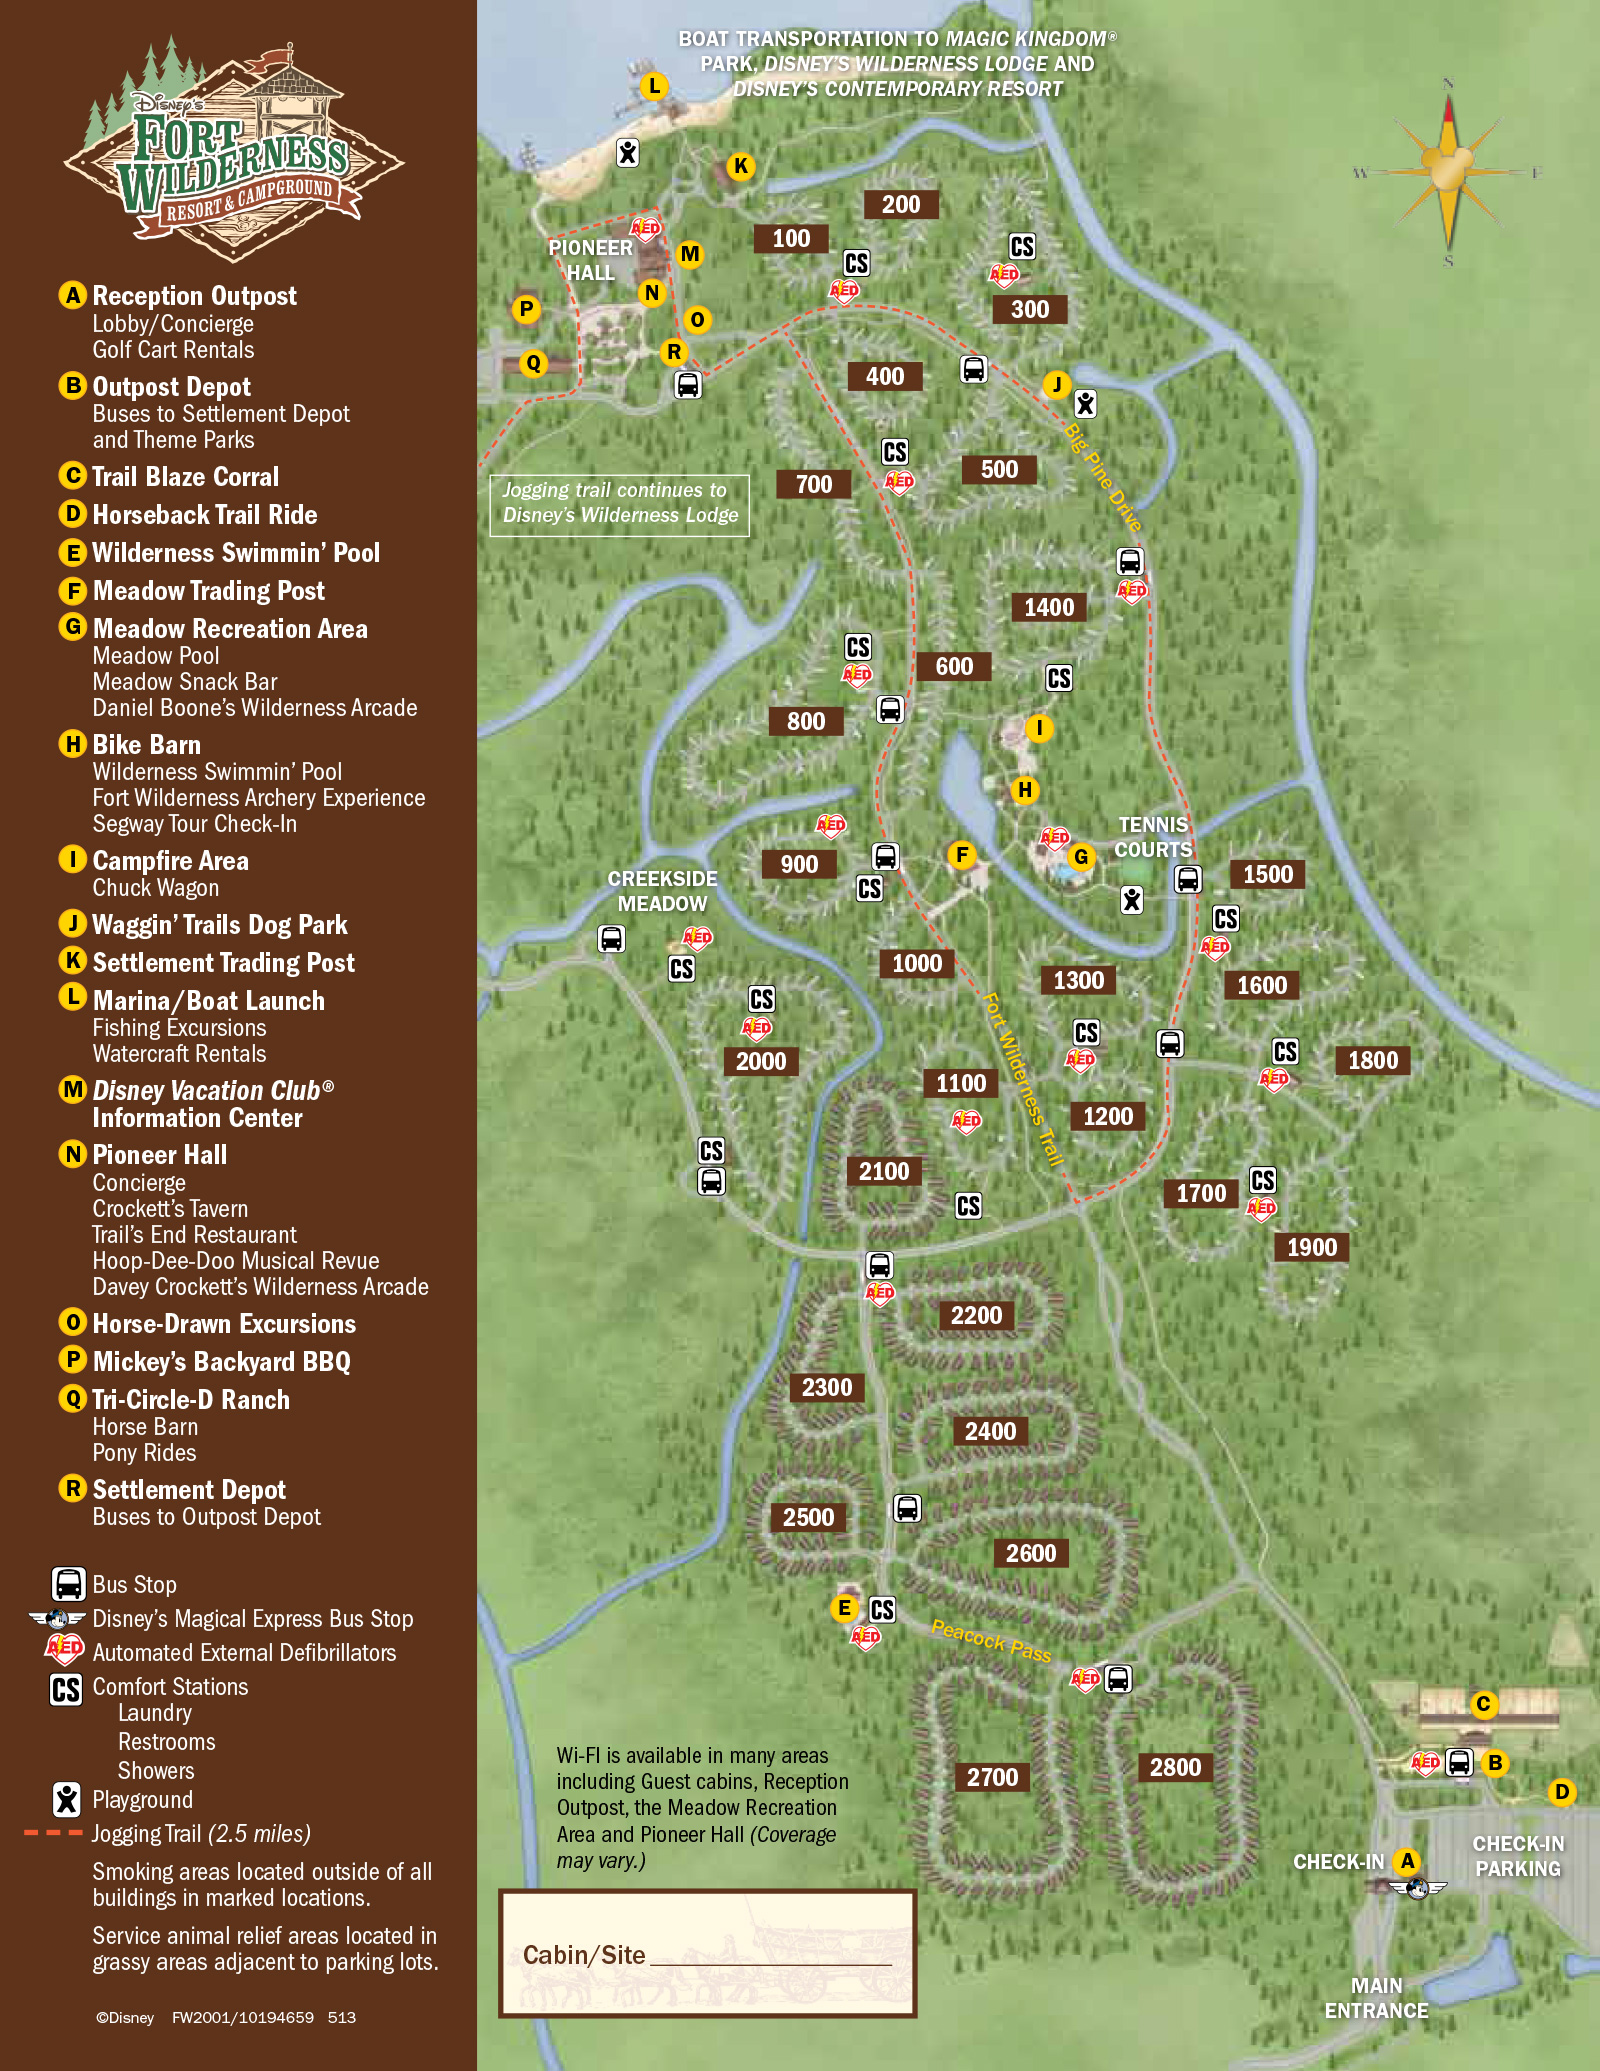 2013 Fort Wilderness guide map